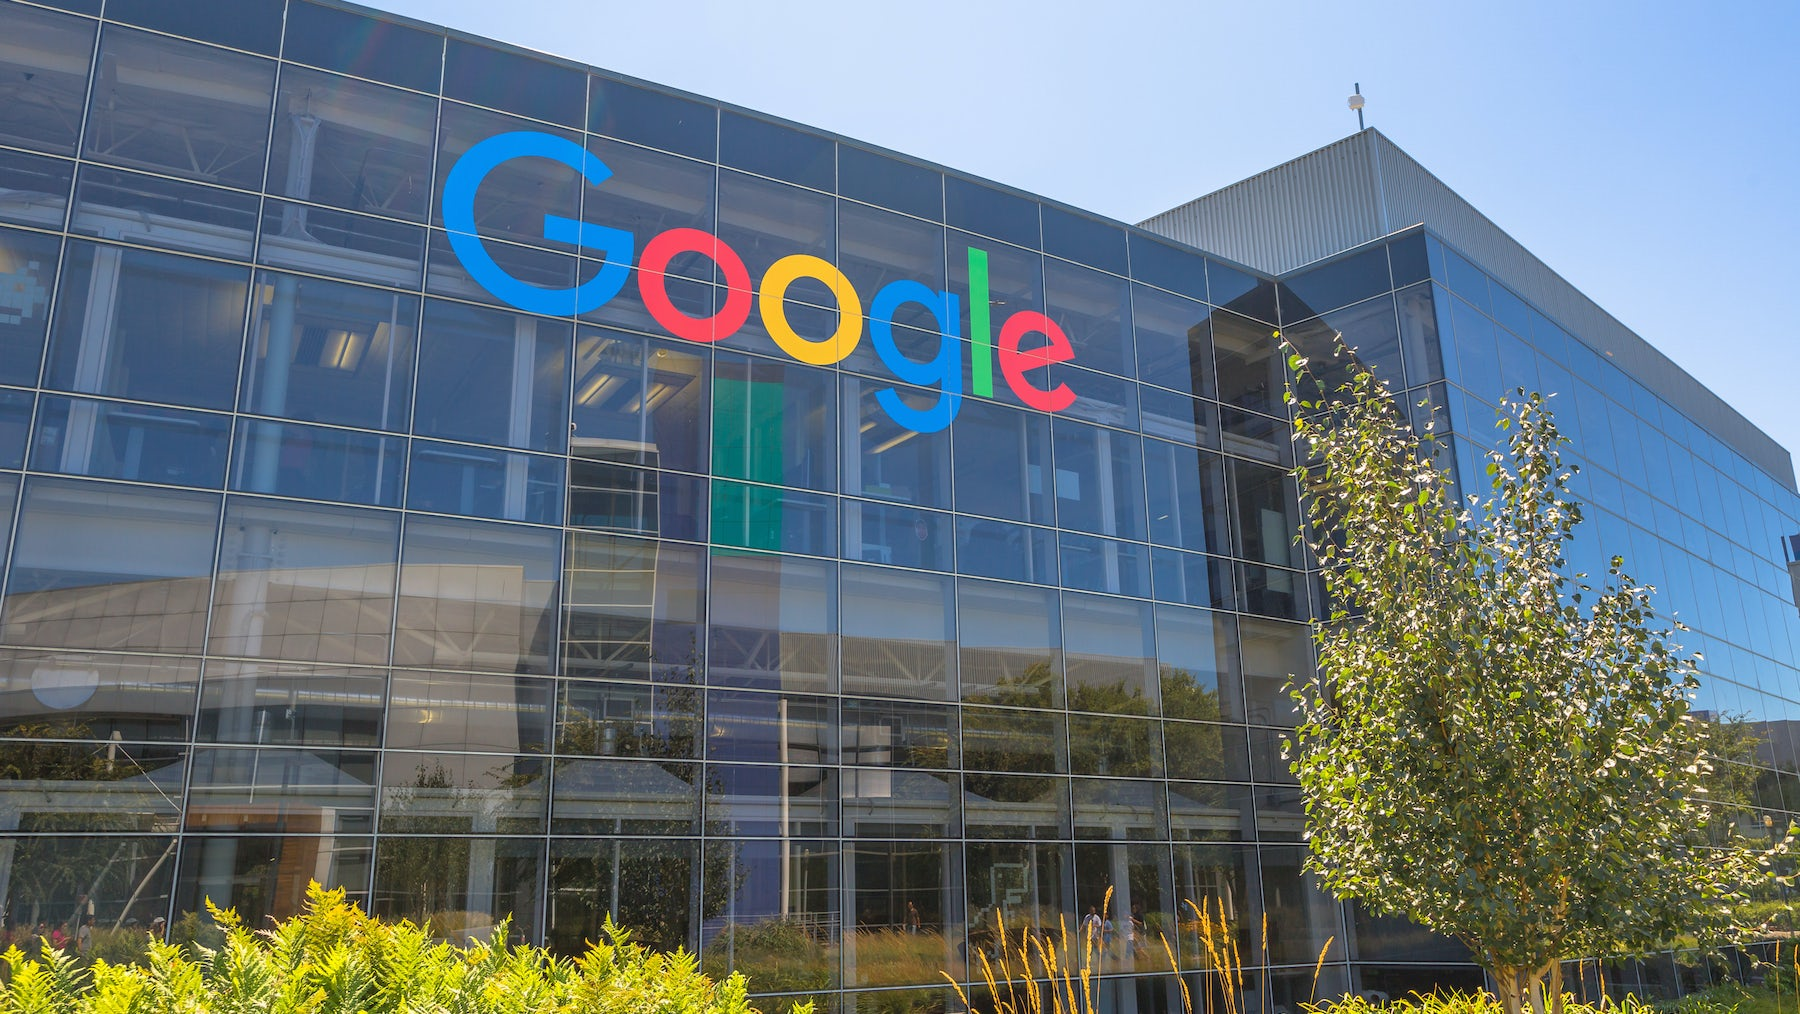 Google's offices in Mountain View, California | Source: Shutterstock